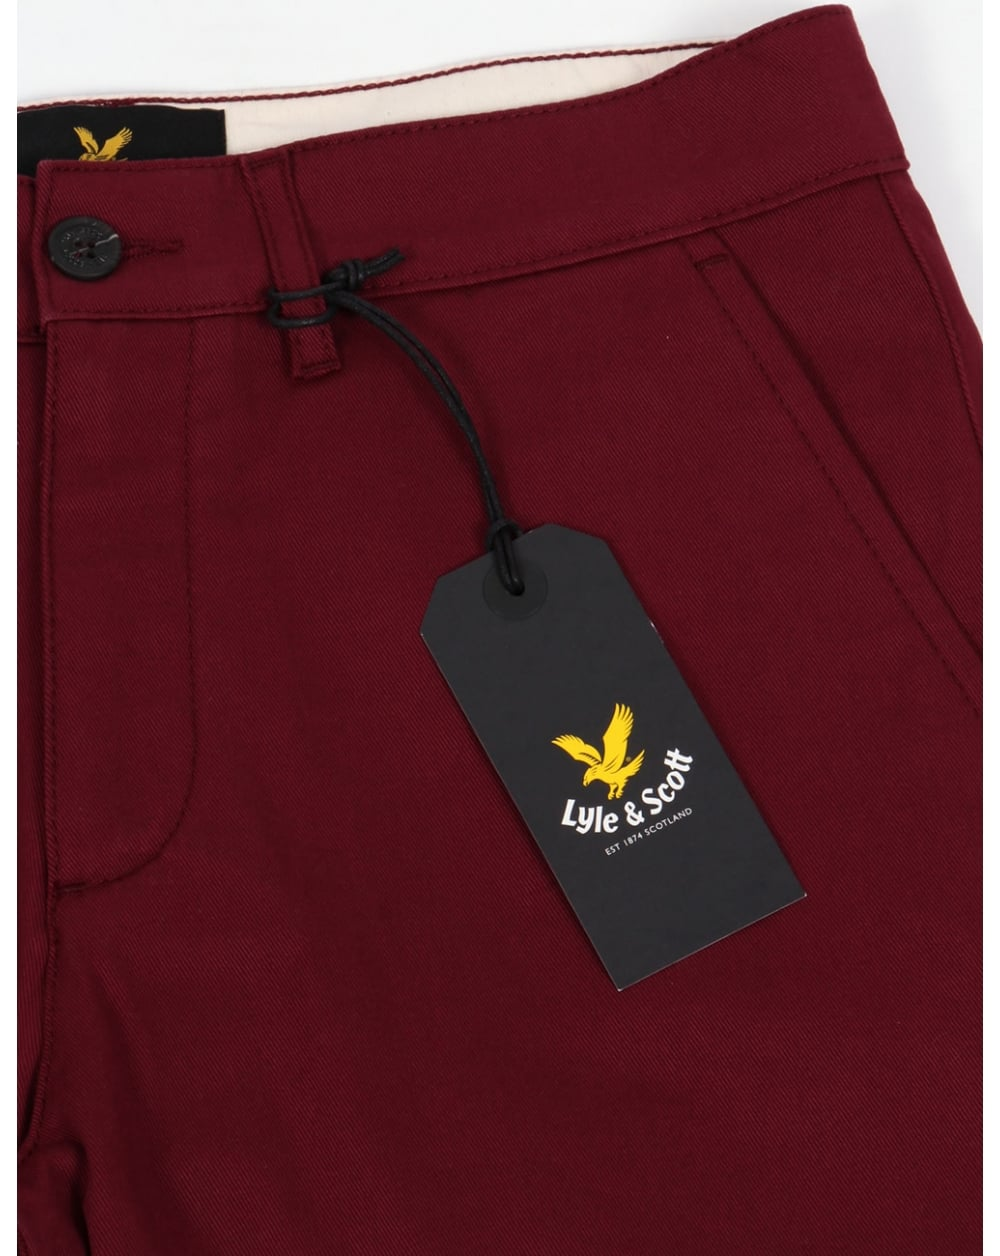 shop half price coupon codes Lyle And Scott Chino Shorts 2 Claret Jug